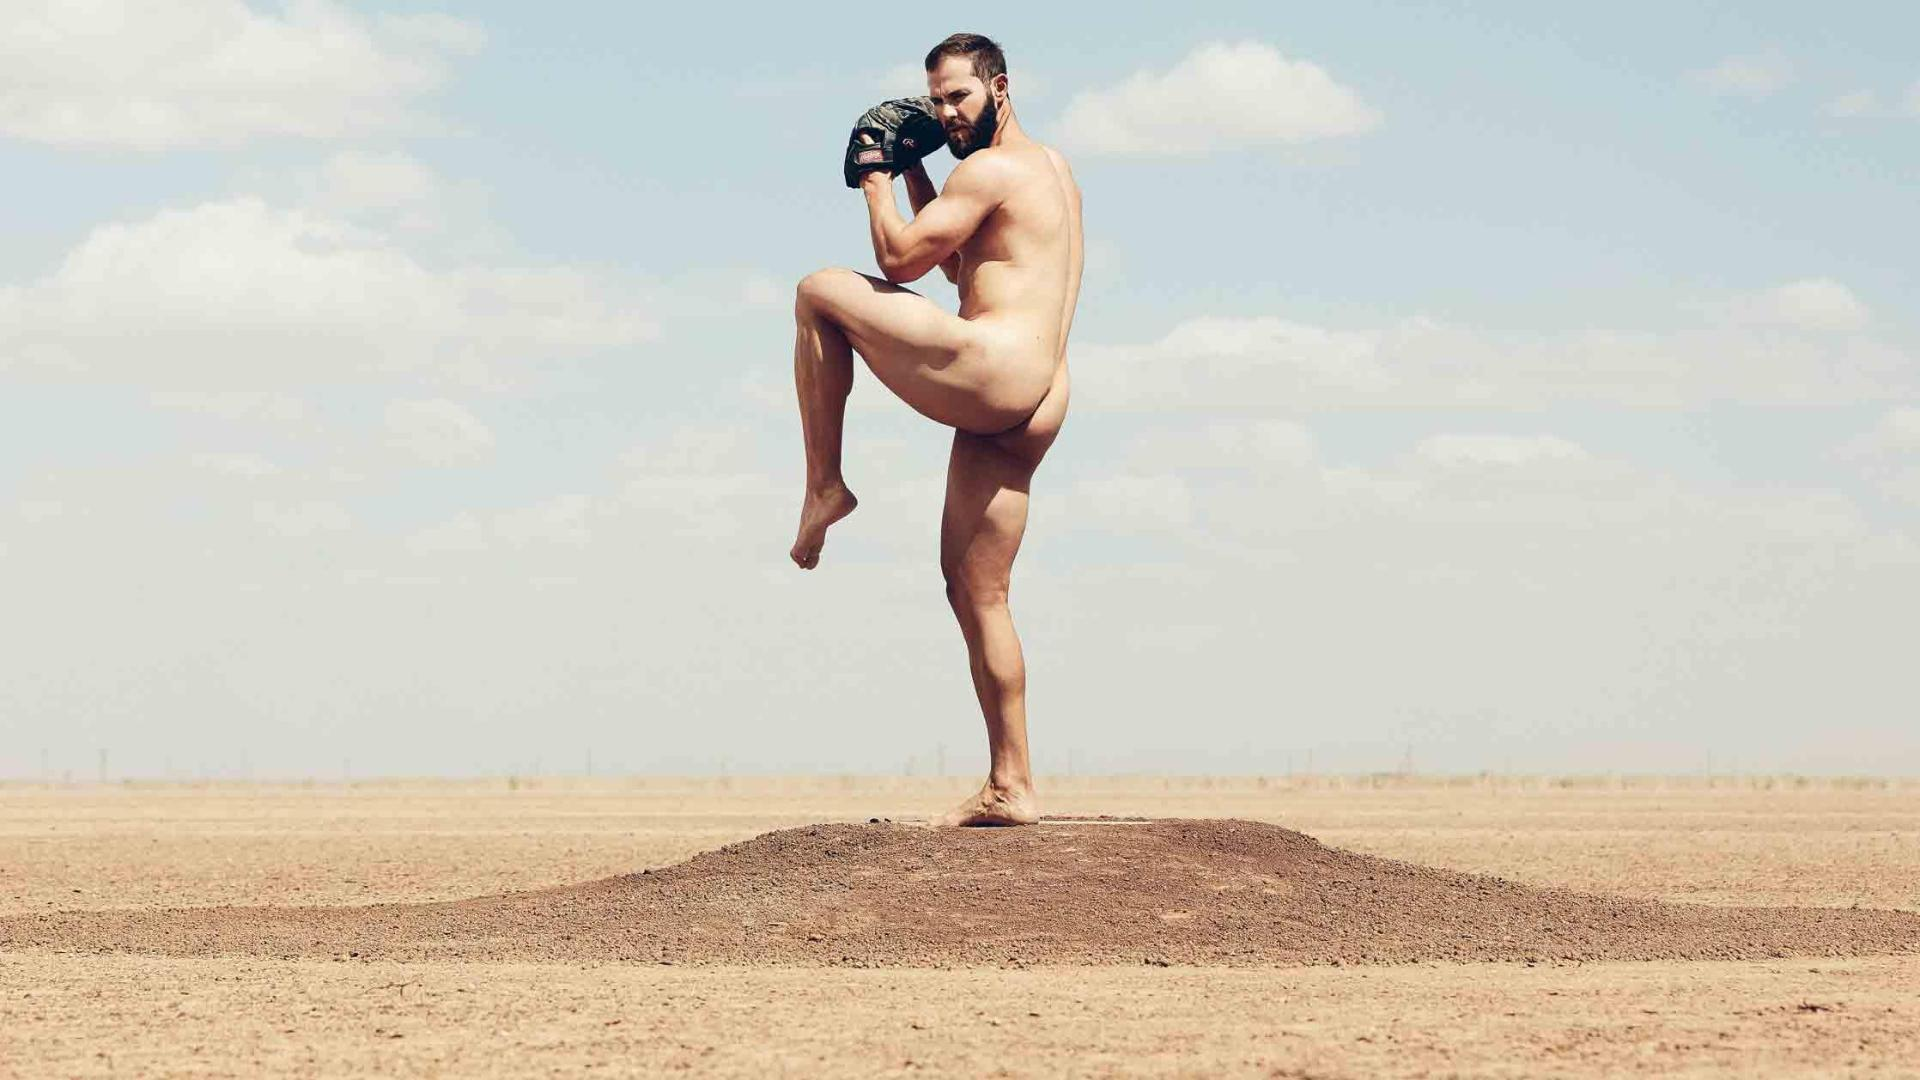 The Body Issue 2016: Jake Arrieta